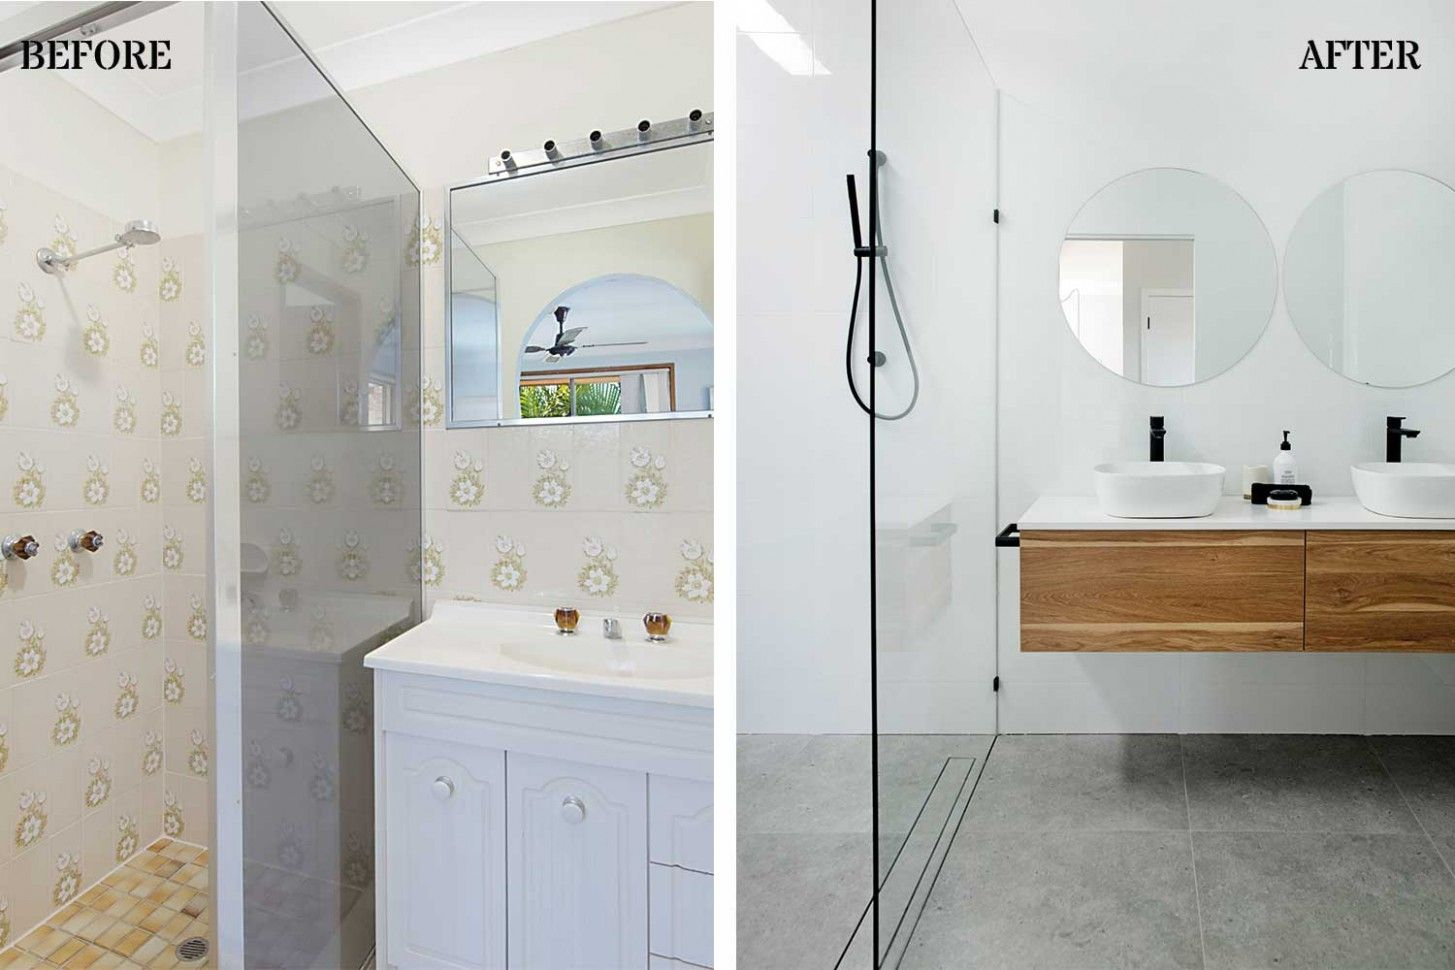 Small Bathroom Remodel Pictures Before And After Bathroom Renovation Cost Bathrooms Remodel Bathroom Renovation